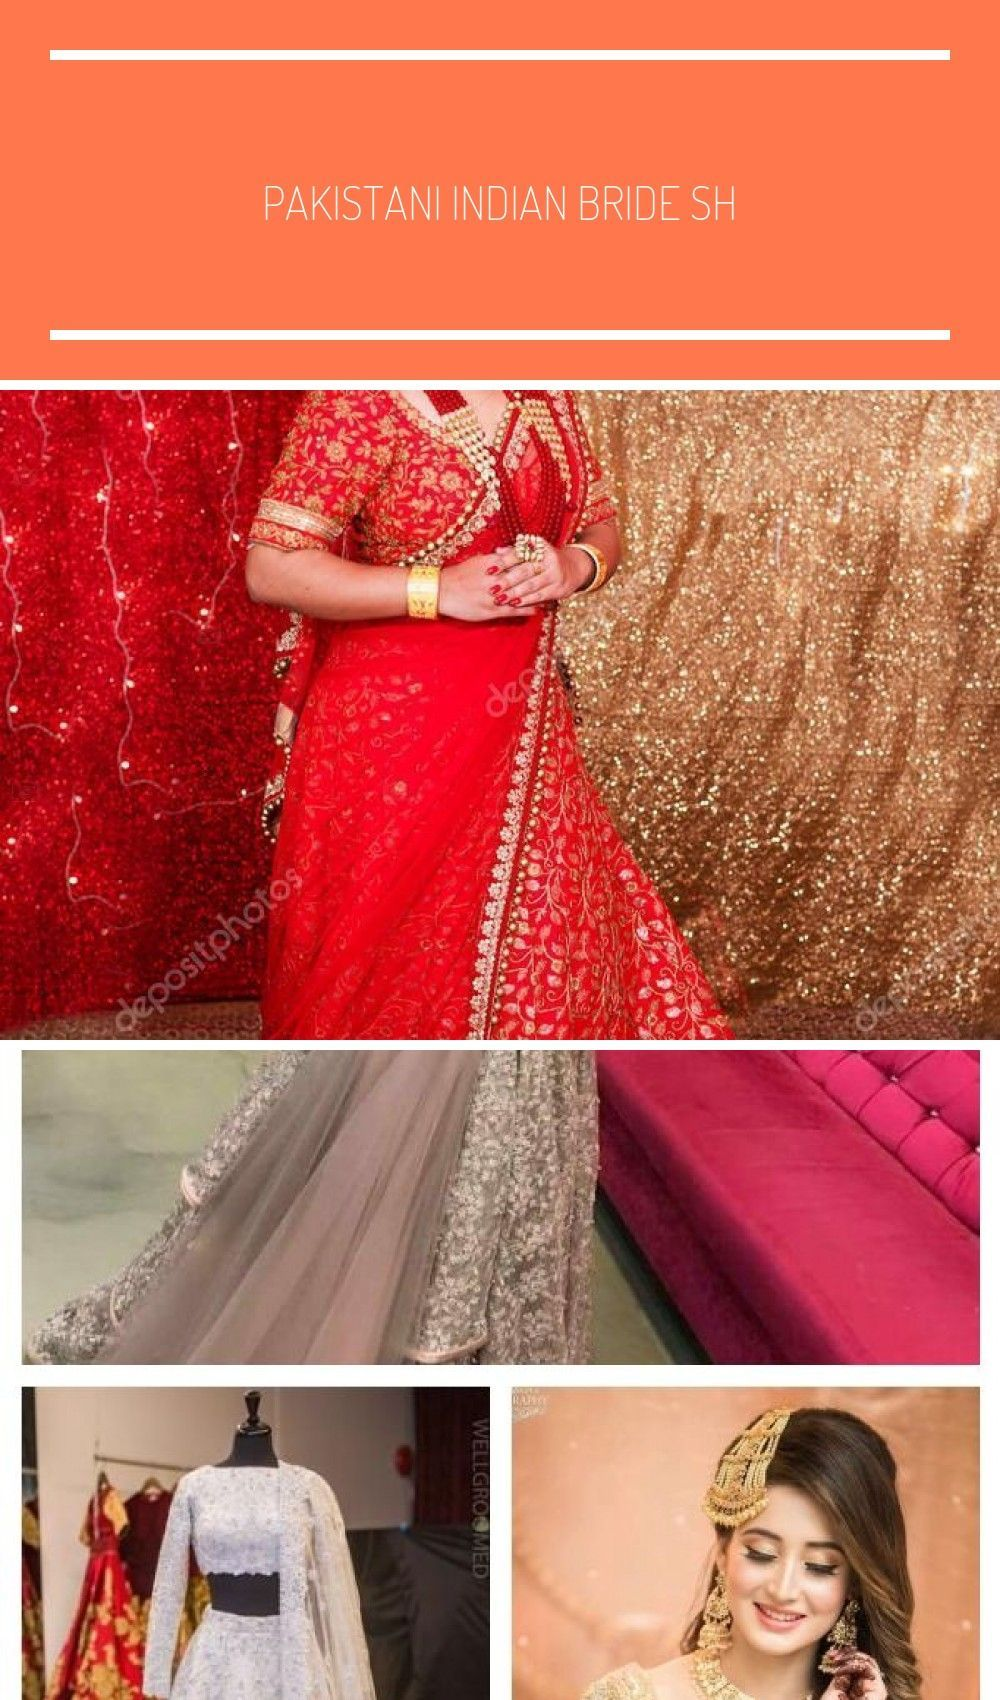 Pakistani Indian Bride Showing Wedding Lehenga Sharara Design Indian Wedding #shararadesigns Pakistani Indian Bride Showing Wedding Lehenga Sharara Design Indian Wedding #shararadesigns Pakistani Indian Bride Showing Wedding Lehenga Sharara Design Indian Wedding #shararadesigns Pakistani Indian Bride Showing Wedding Lehenga Sharara Design Indian Wedding #shararadesigns Pakistani Indian Bride Showing Wedding Lehenga Sharara Design Indian Wedding #shararadesigns Pakistani Indian Bride Showing Wedd #shararadesigns